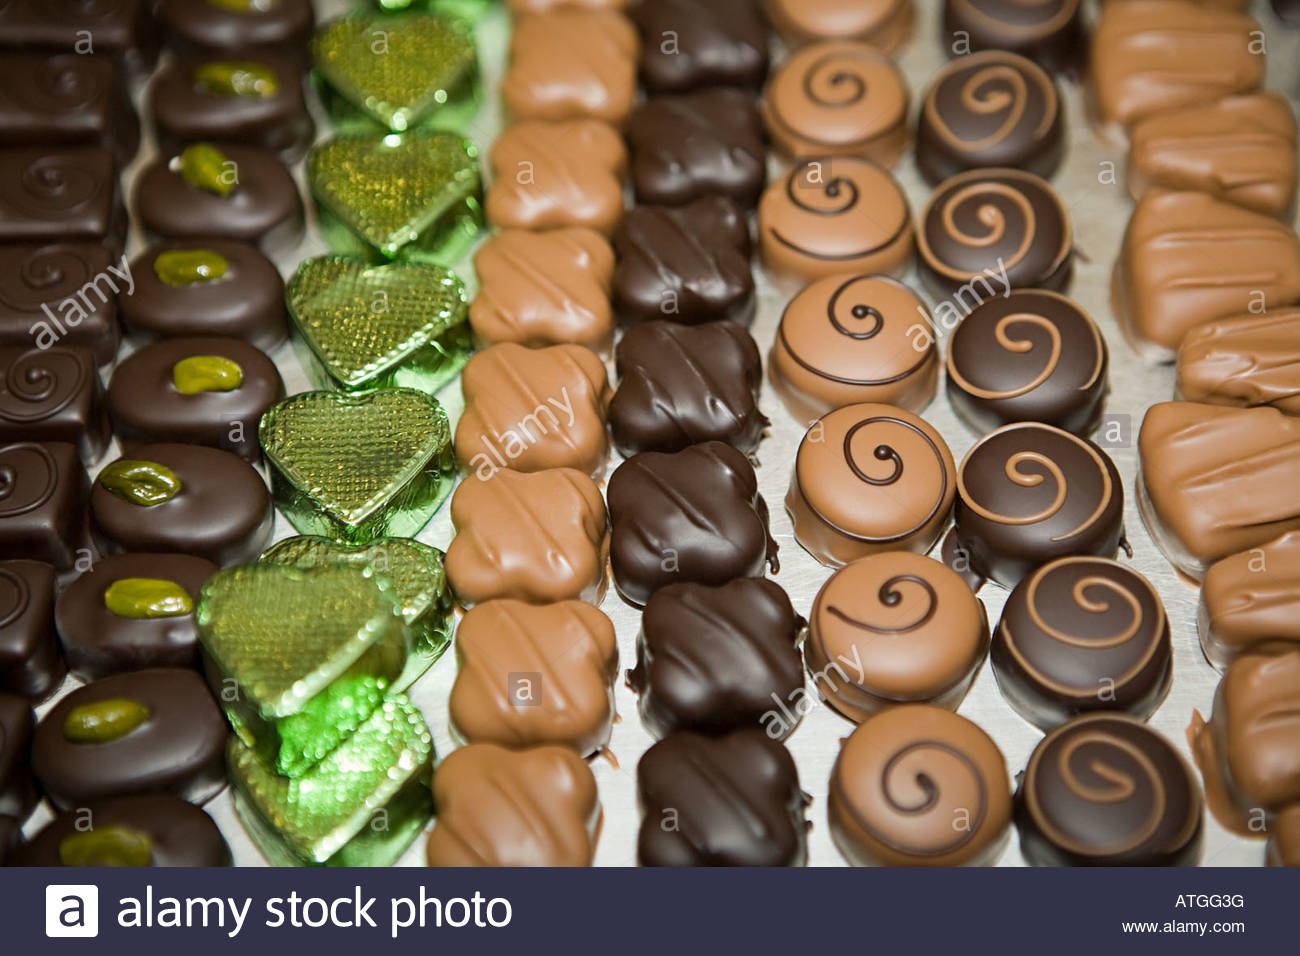 Chocolates in a row - Stock Image